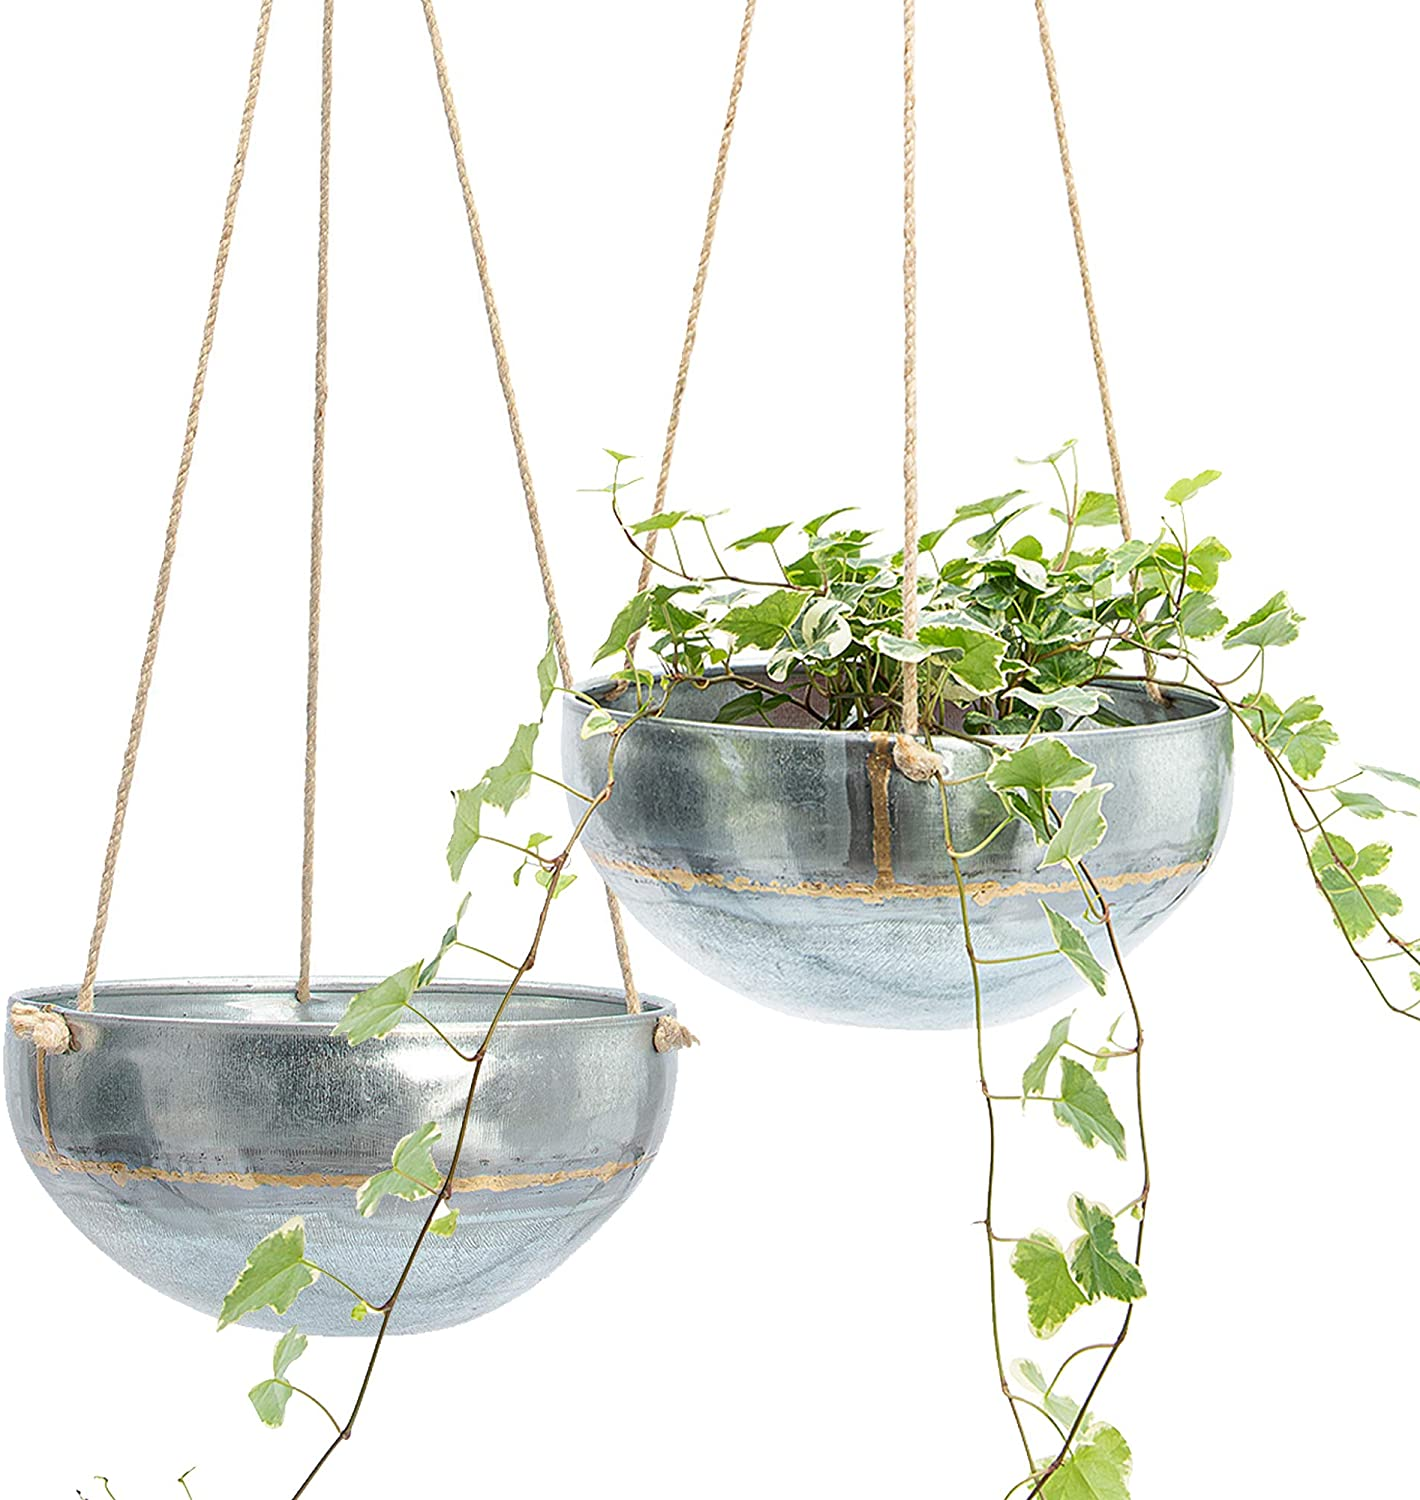 Set 2 Hanging Planter for Outdoor & Indoor Plants, Galvanized Iron Pot, Large Flower Hanger for Patio, Window, Garden, Balcony and Terrace, Modern Hang Basket with Rope, Boho Chic Metal Holder